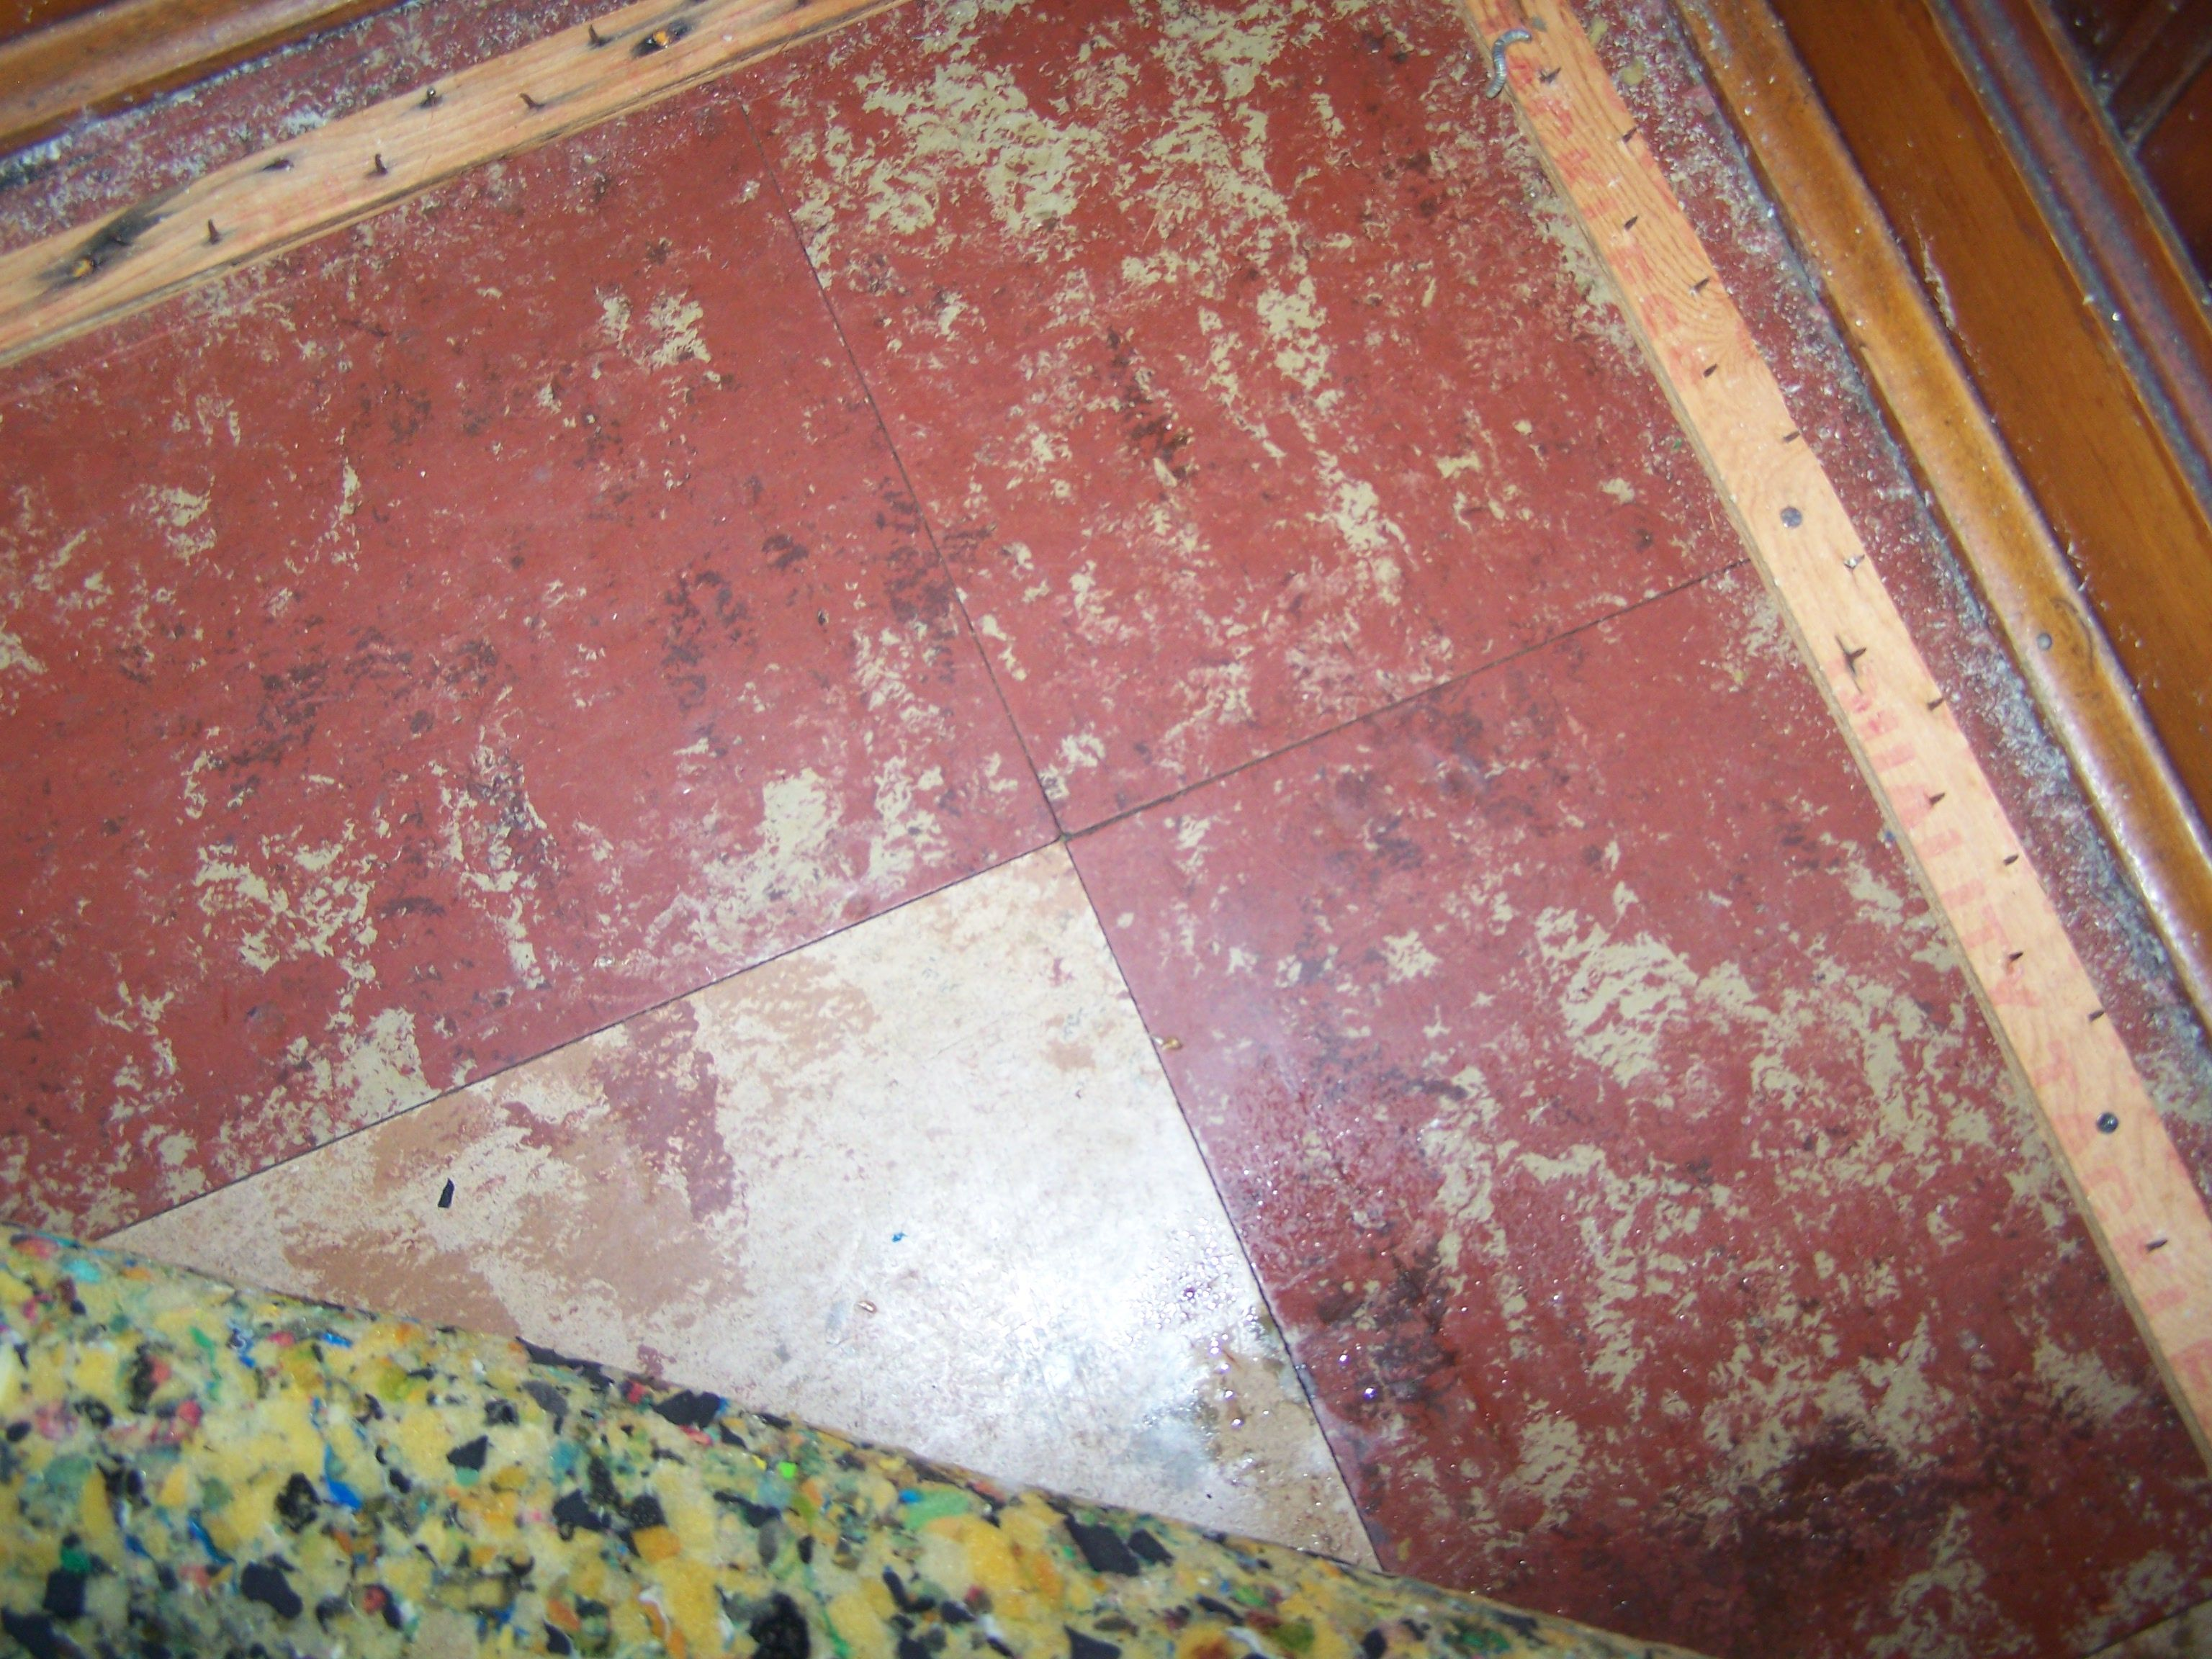 312 850 9010 Asbestos Floor Tile Removal Chicago Company Abatement Sample Analysis Inspections Surveys Testing Mold And Lead Prof Tile Removal Molding Asbestos